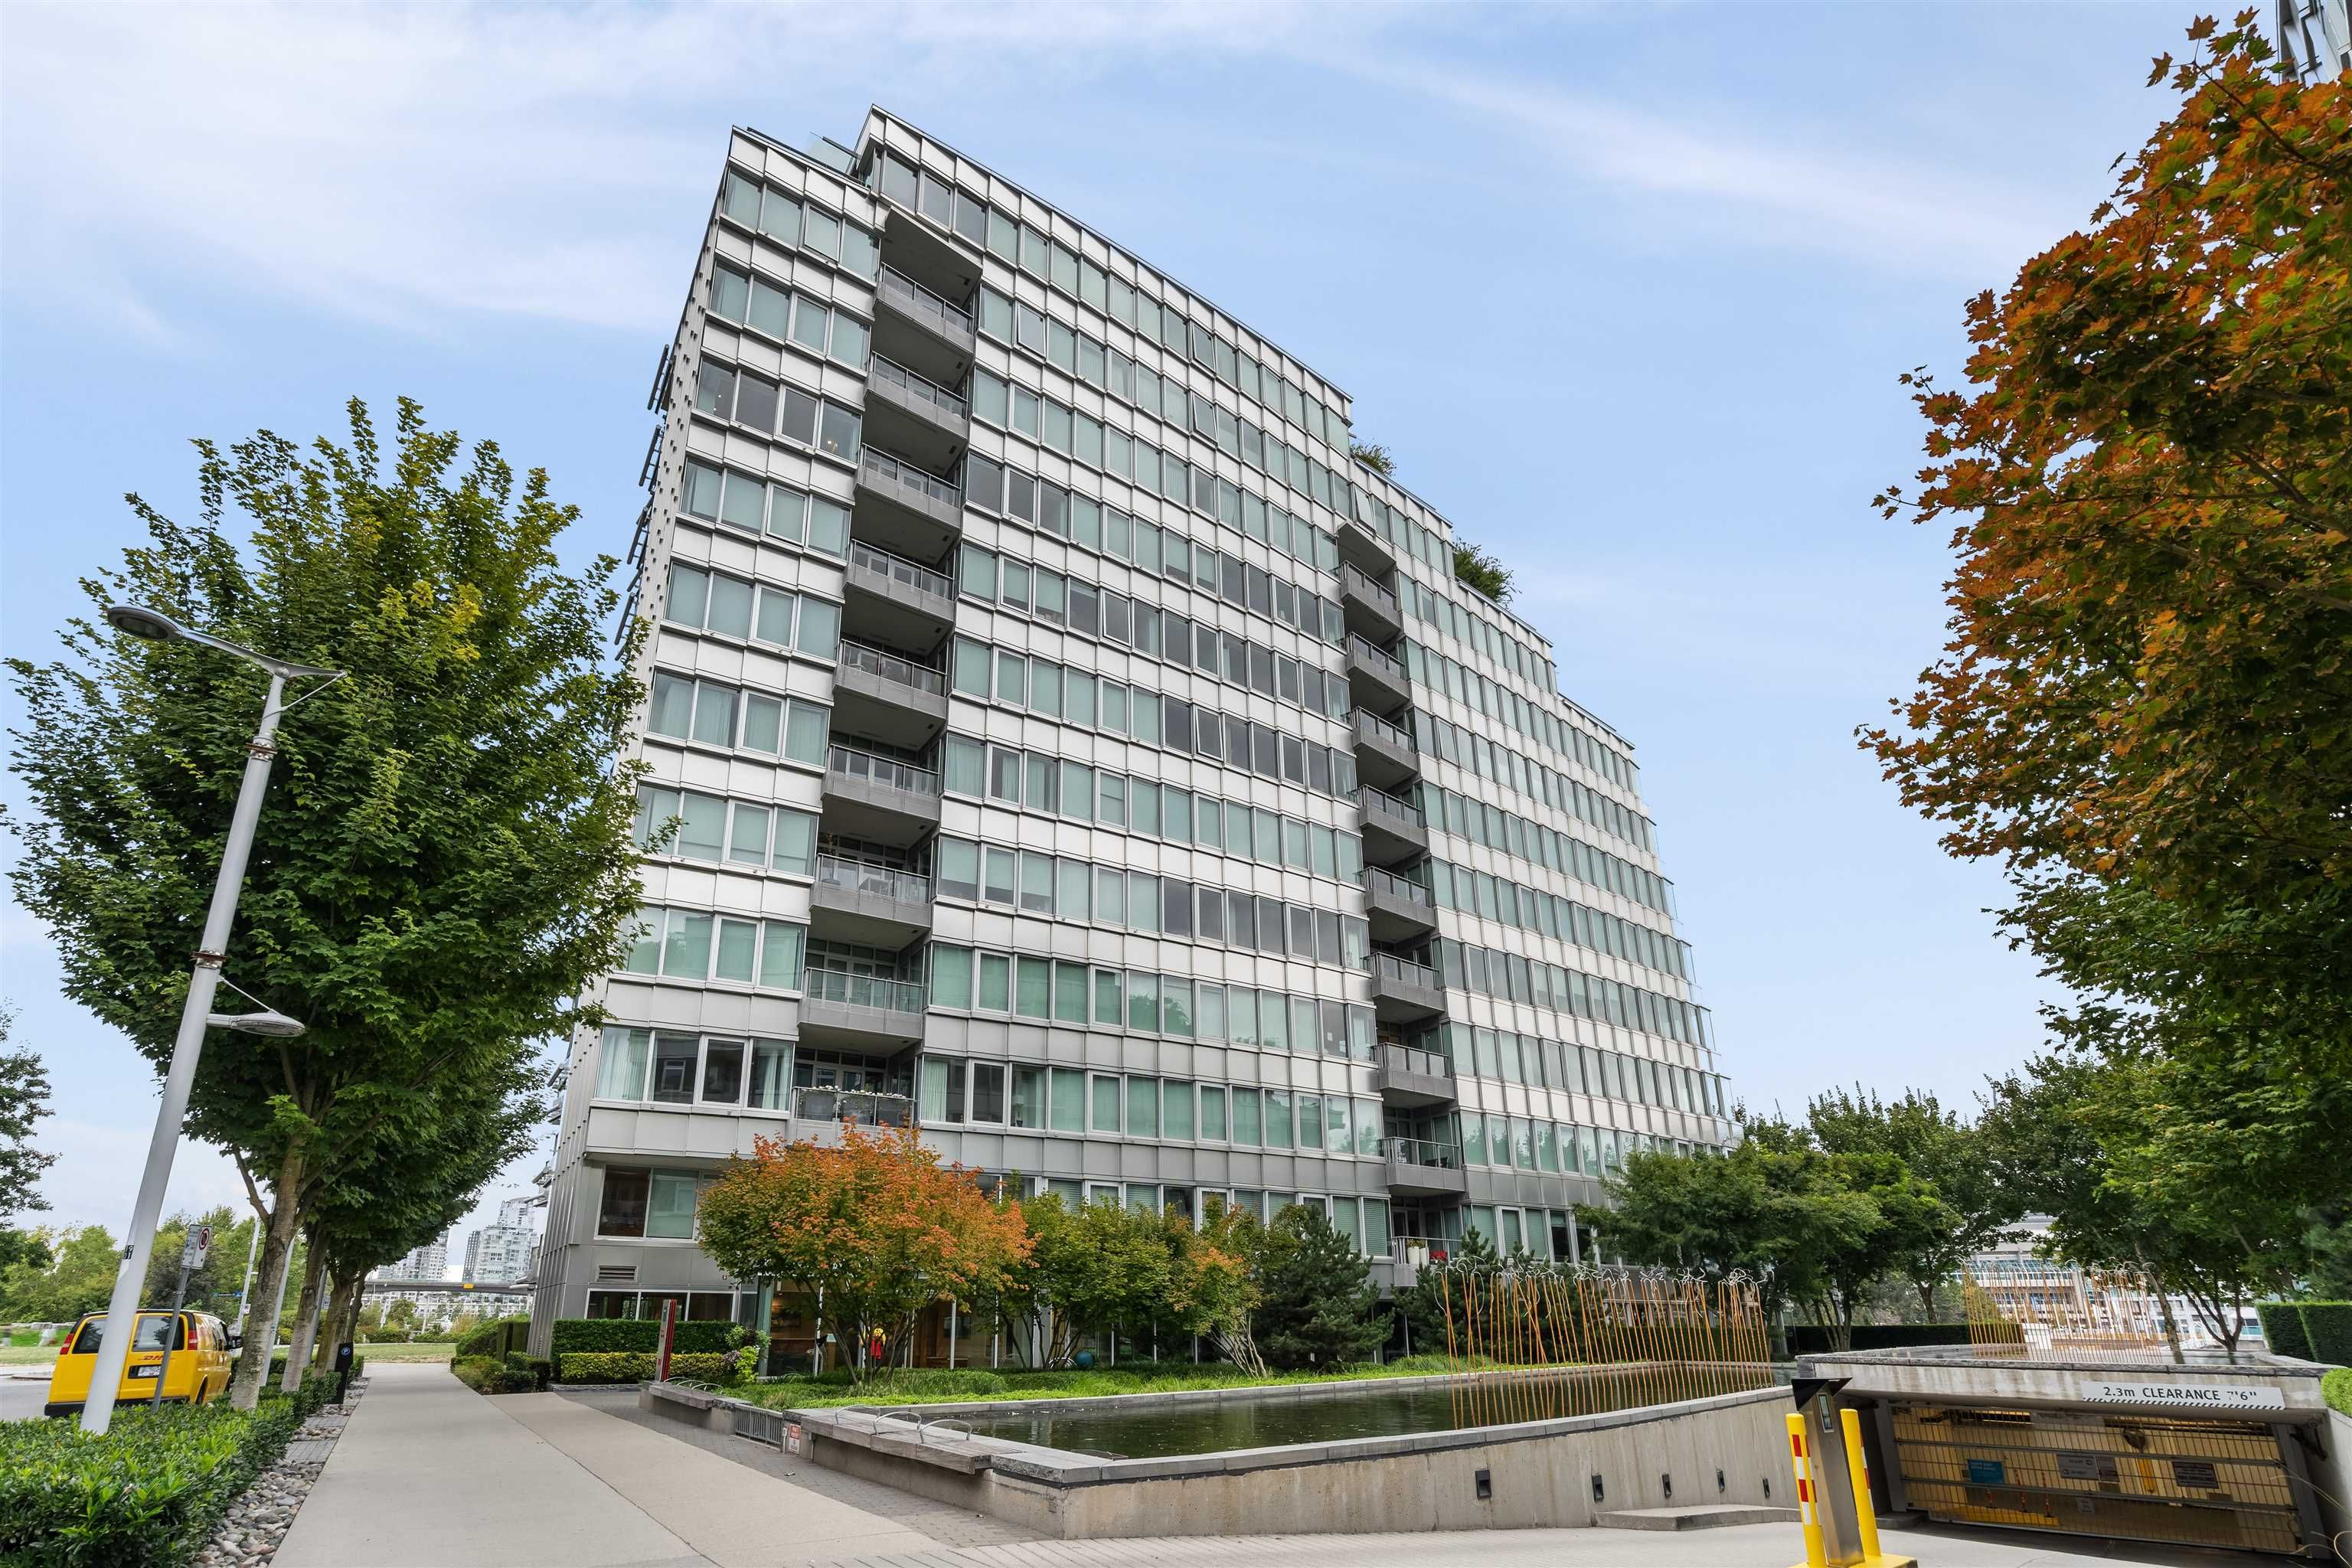 Main Photo: 202 181 ATHLETES Way in Vancouver: False Creek Condo for sale (Vancouver West)  : MLS®# R2615013